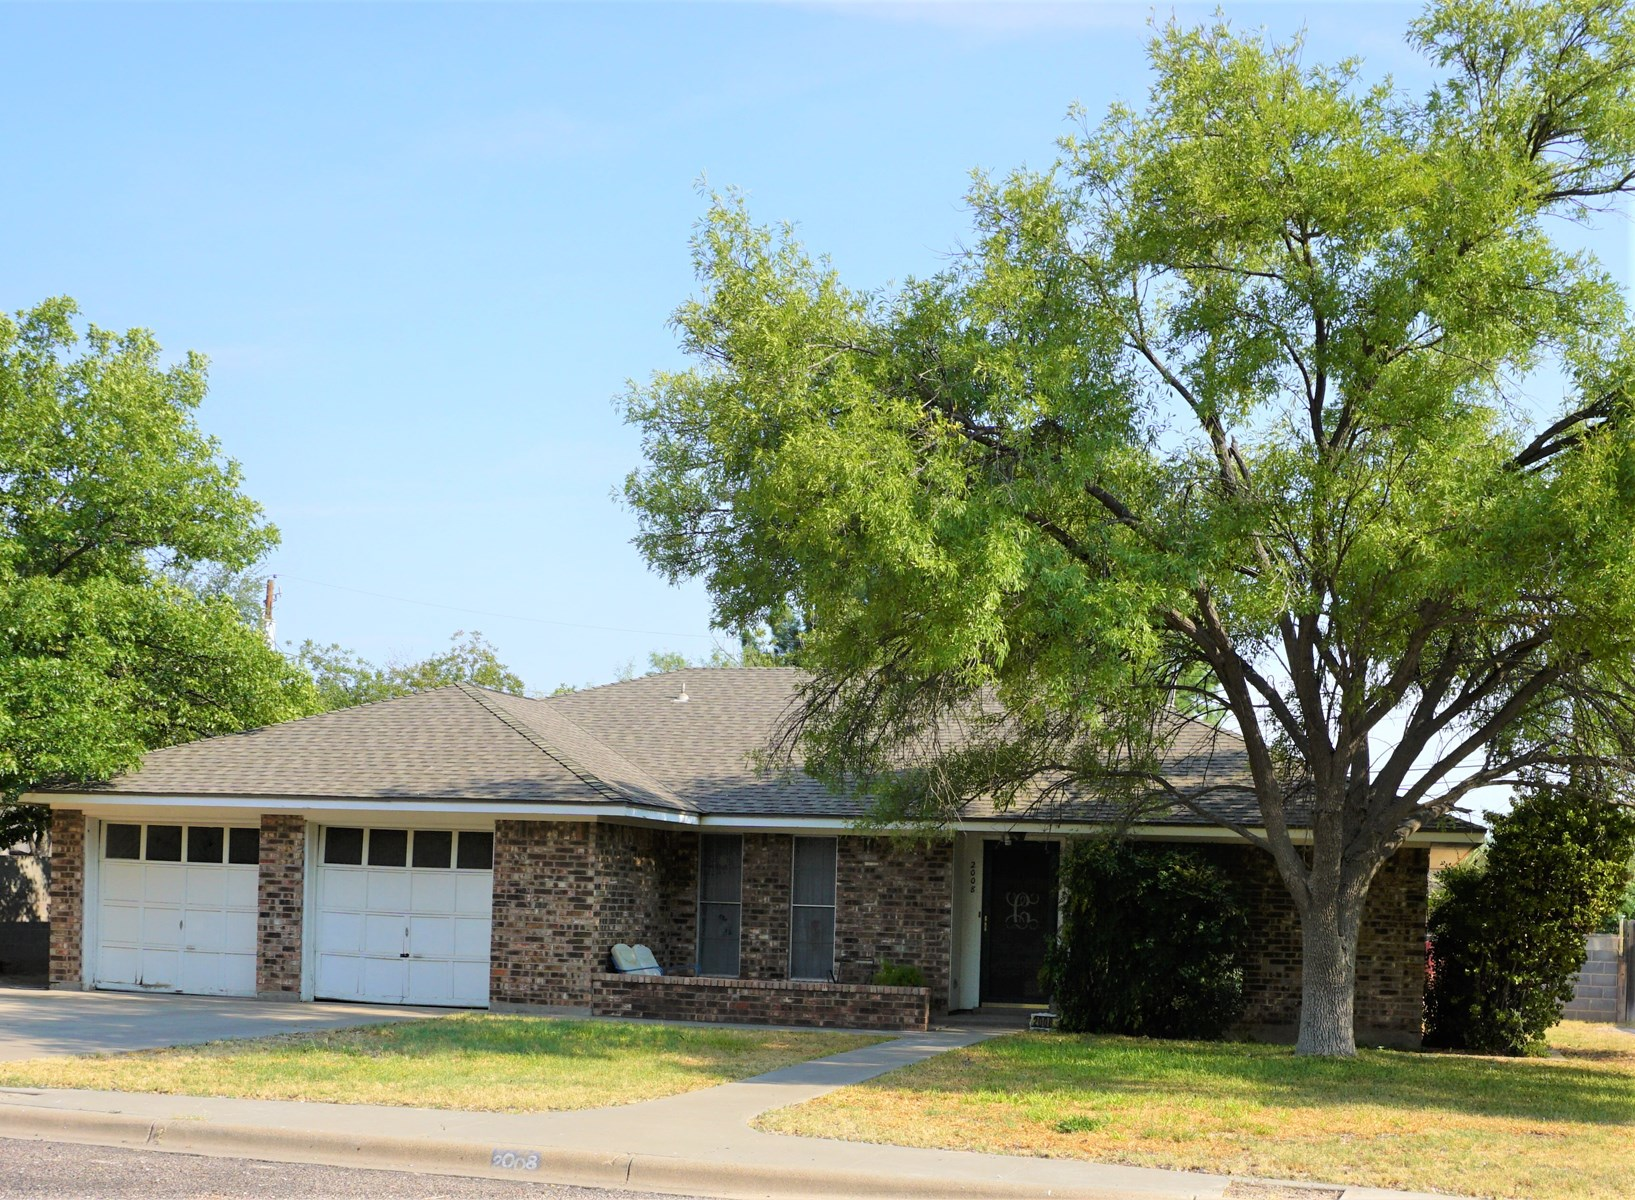 HOME FOR SALE IN FT. STOCKTON TX FEATURING 3 BDRM AND 2 BA